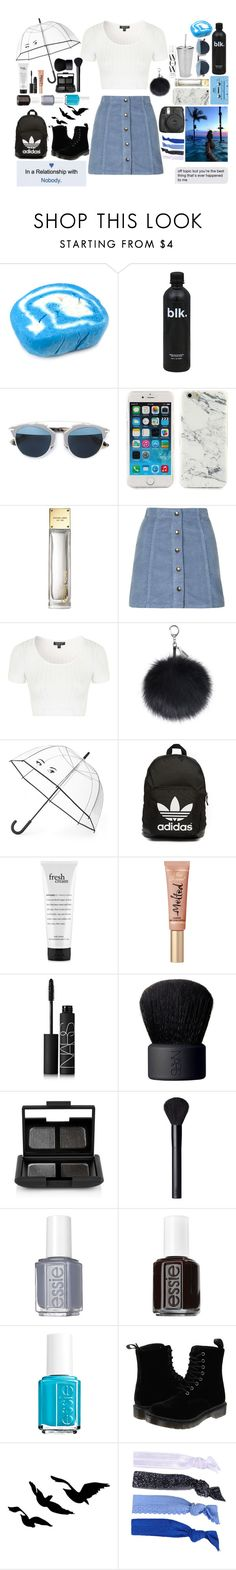 """""""Let's Go Dancing In The Rain"""" by cutienat123 ❤ liked on Polyvore featuring Christian Dior, CASSETTE, Nicole Miller, Michael Kors, Topshop, Kate Spade, adidas Originals, philosophy, NARS Cosmetics and Essie"""